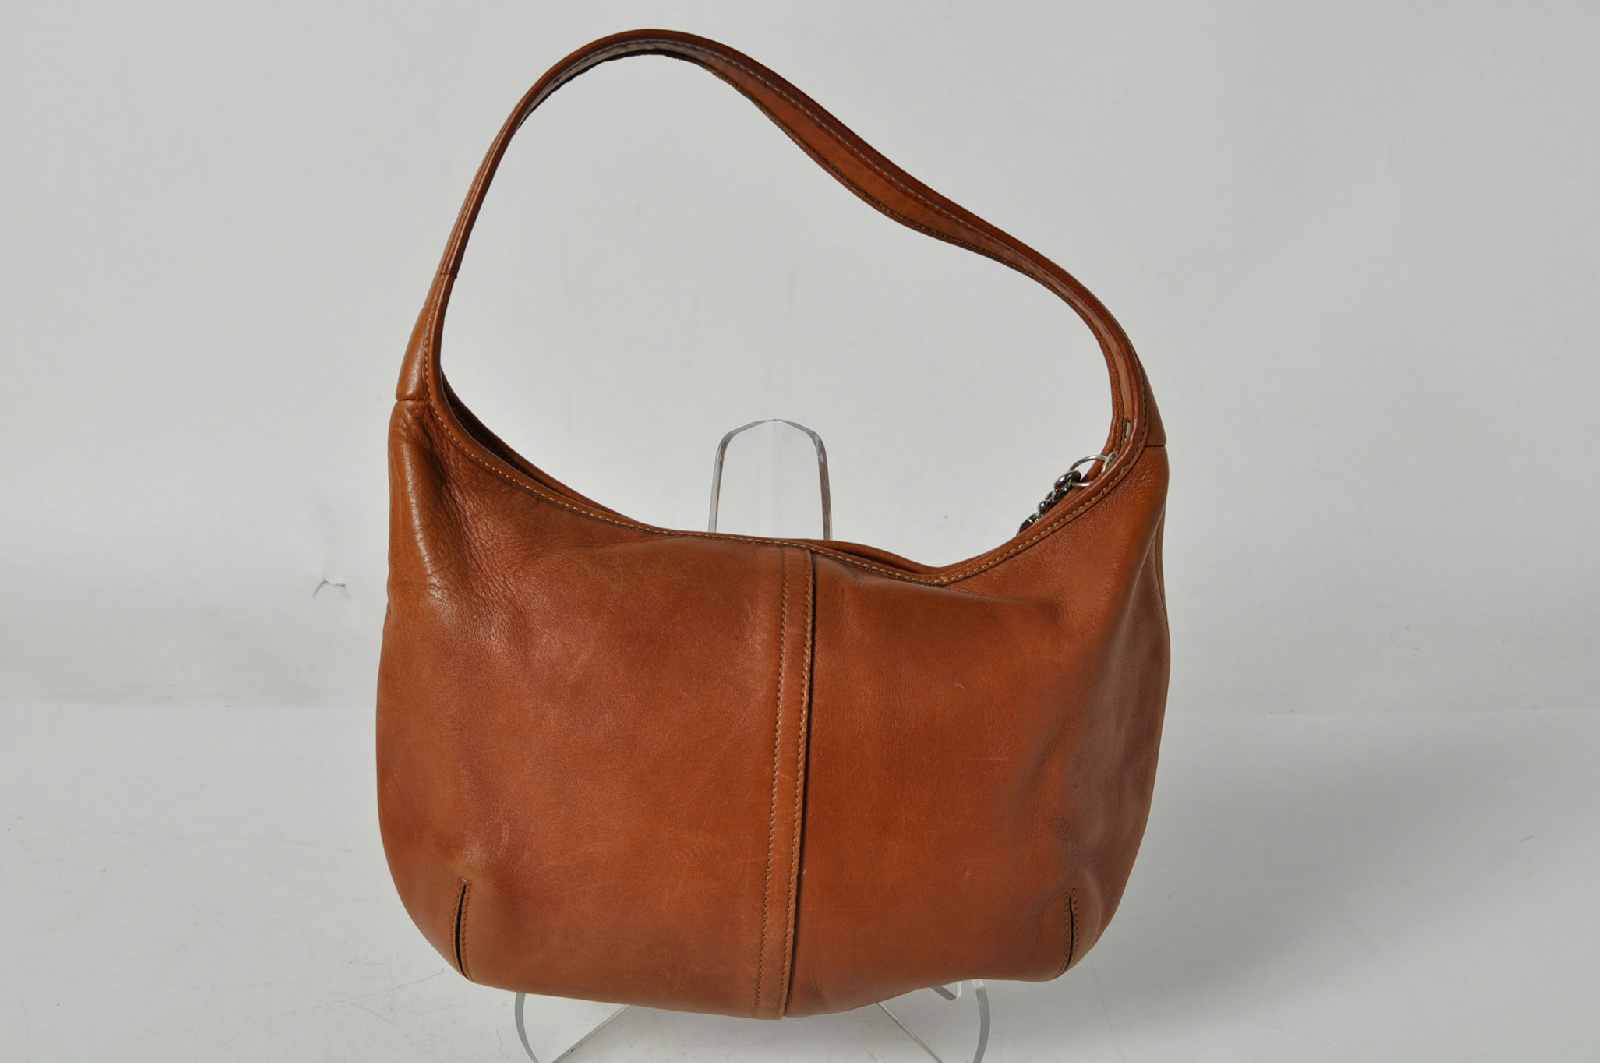 f1020fa1119d Coach Brown Leather Hobo Bag | Stanford Center for Opportunity ...